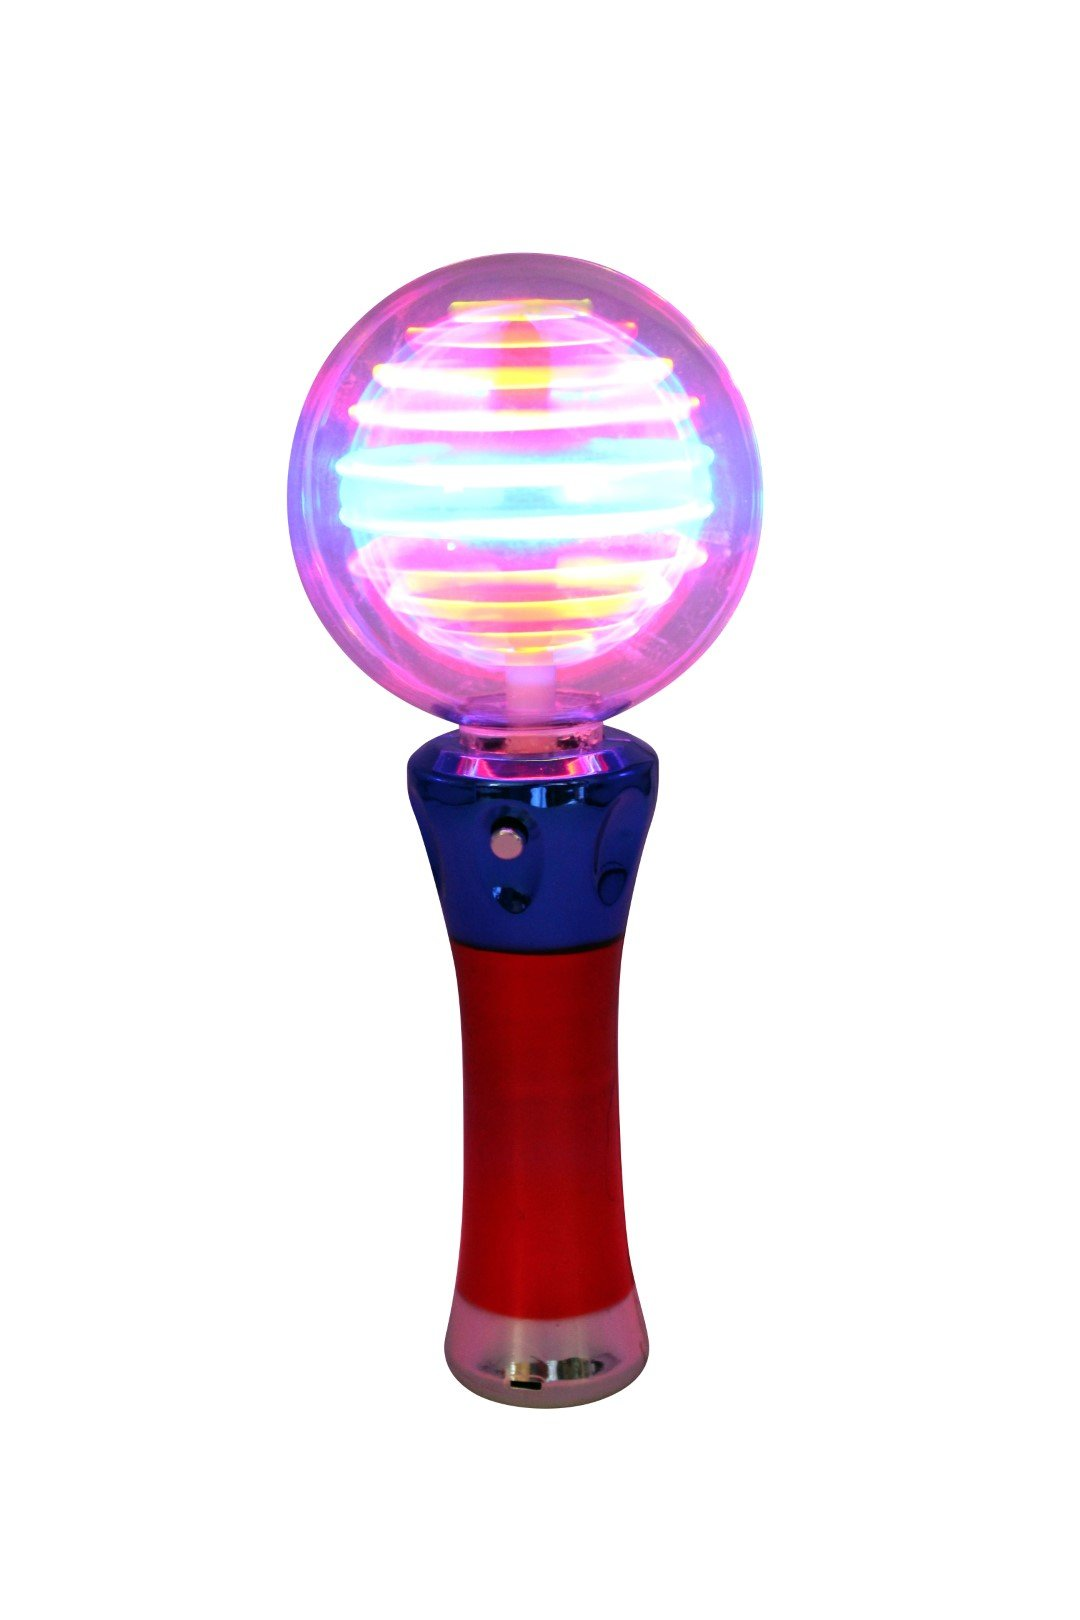 SSBW – Spinner Wand b (Large)